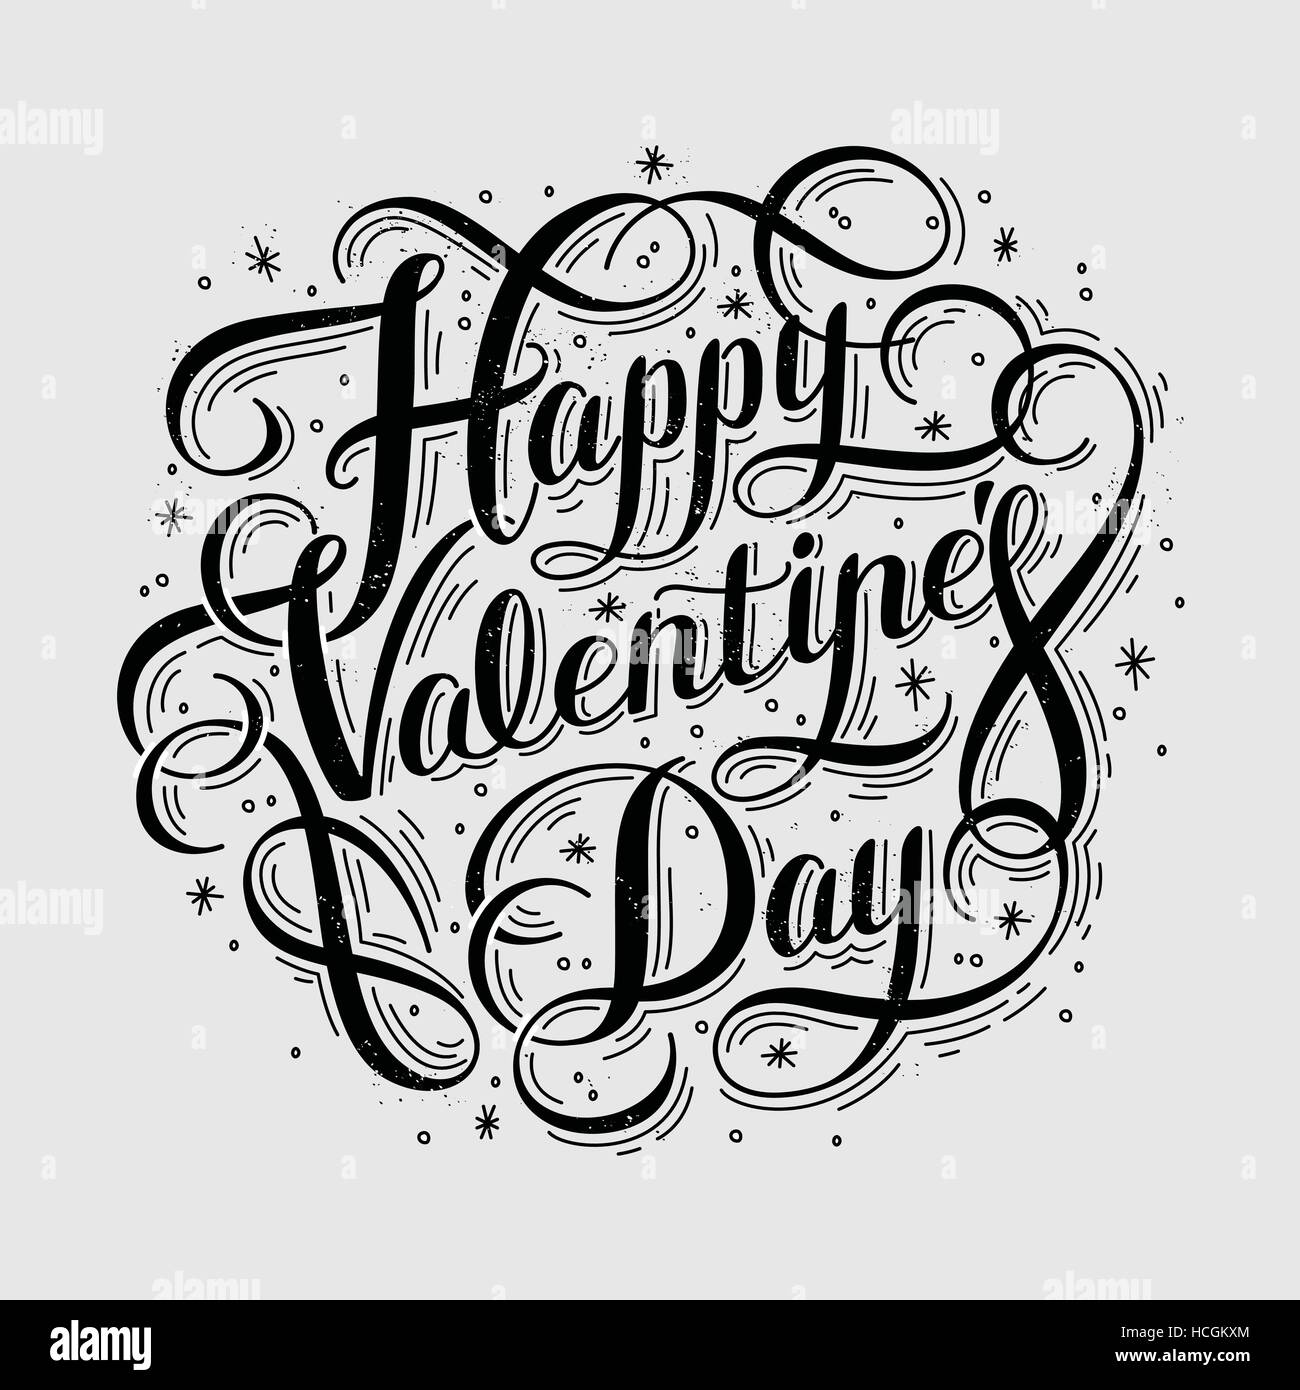 Happy Valentine S Day Hand Lettering Calligraphy Design Stock Vector